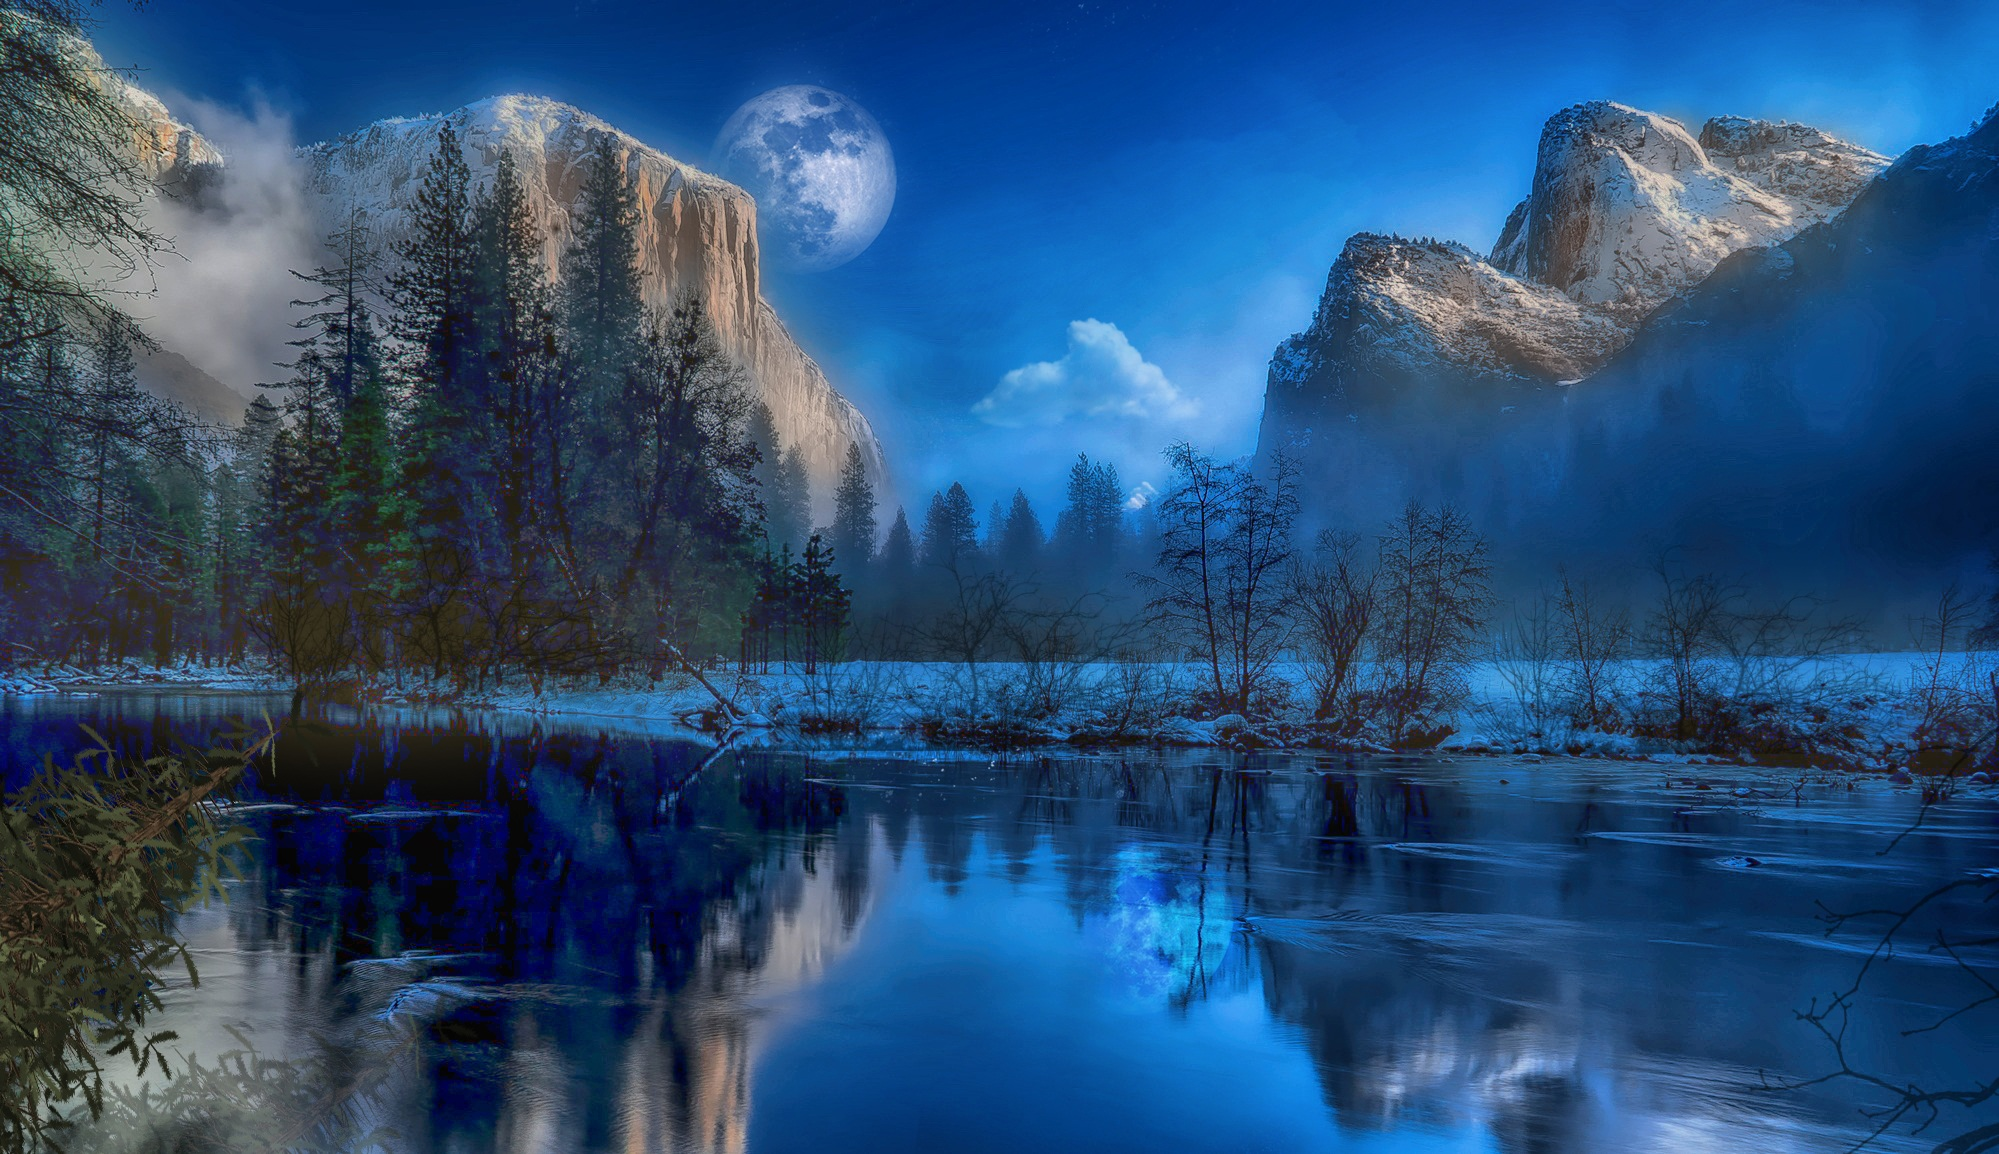 Yosemite Park Fantasy Hd Nature 4k Wallpapers Images Backgrounds Photos And Pictures